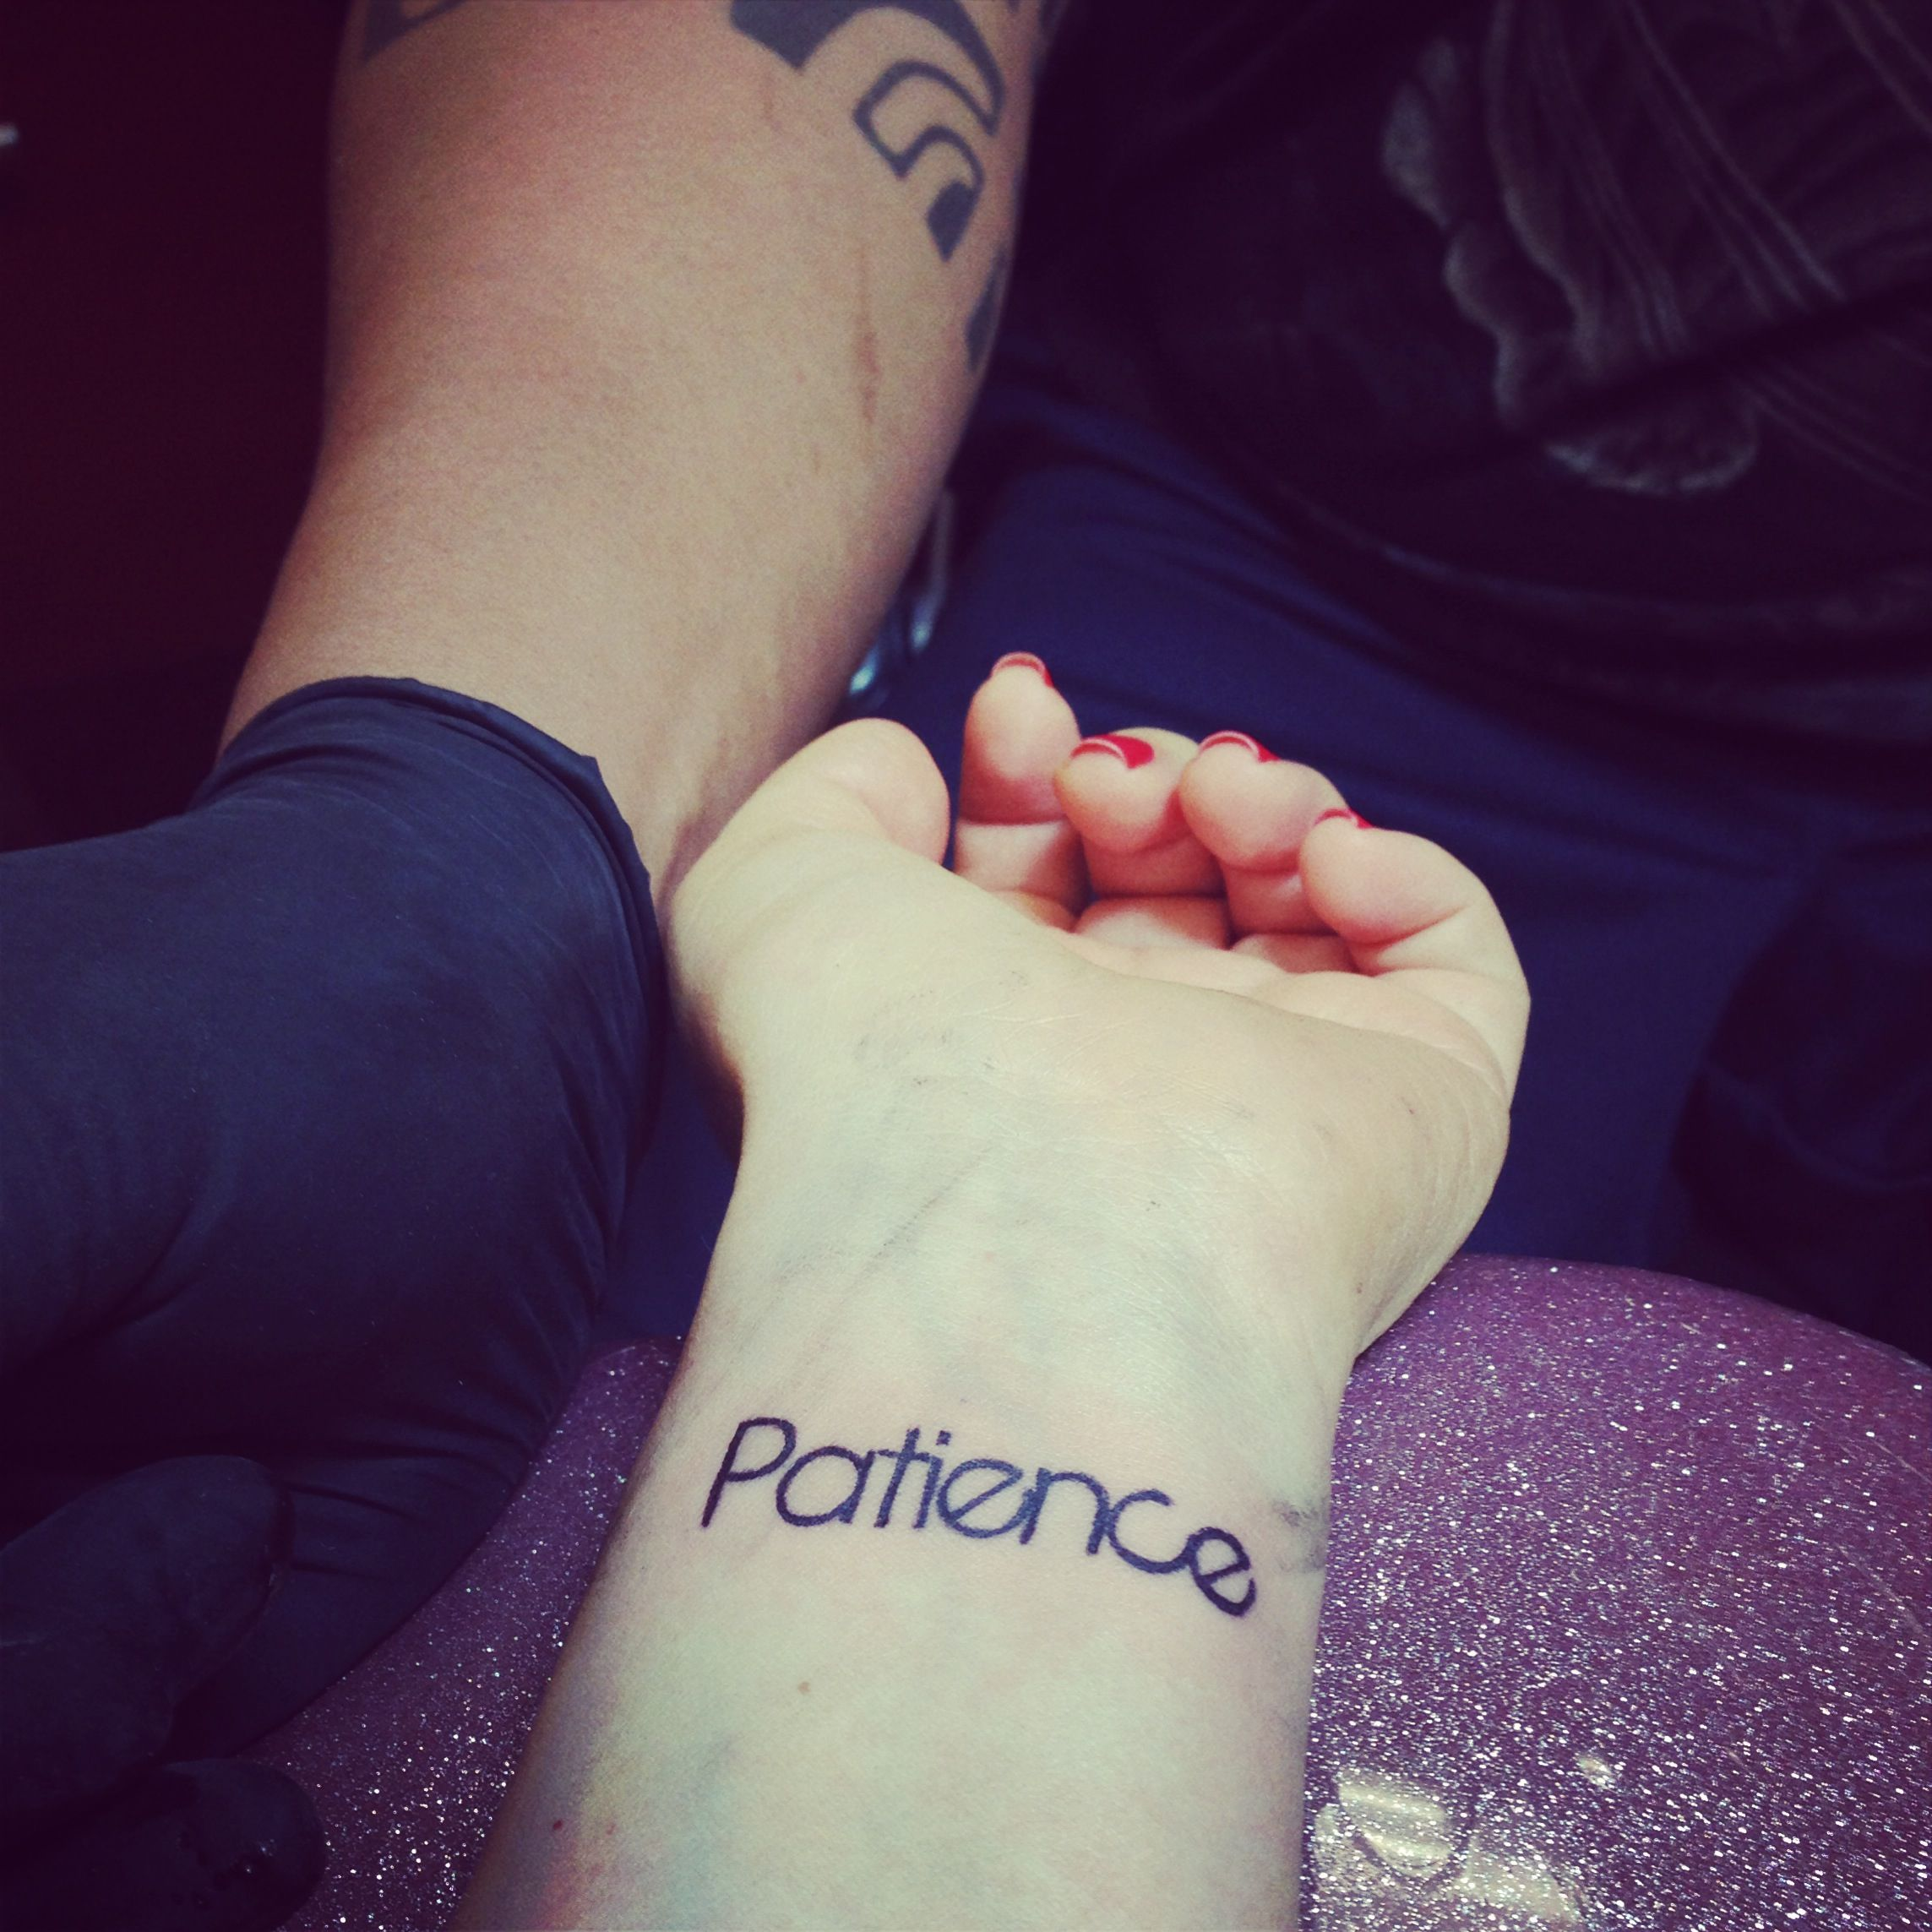 best images about tattoooooos on pinterest fonts wait for it